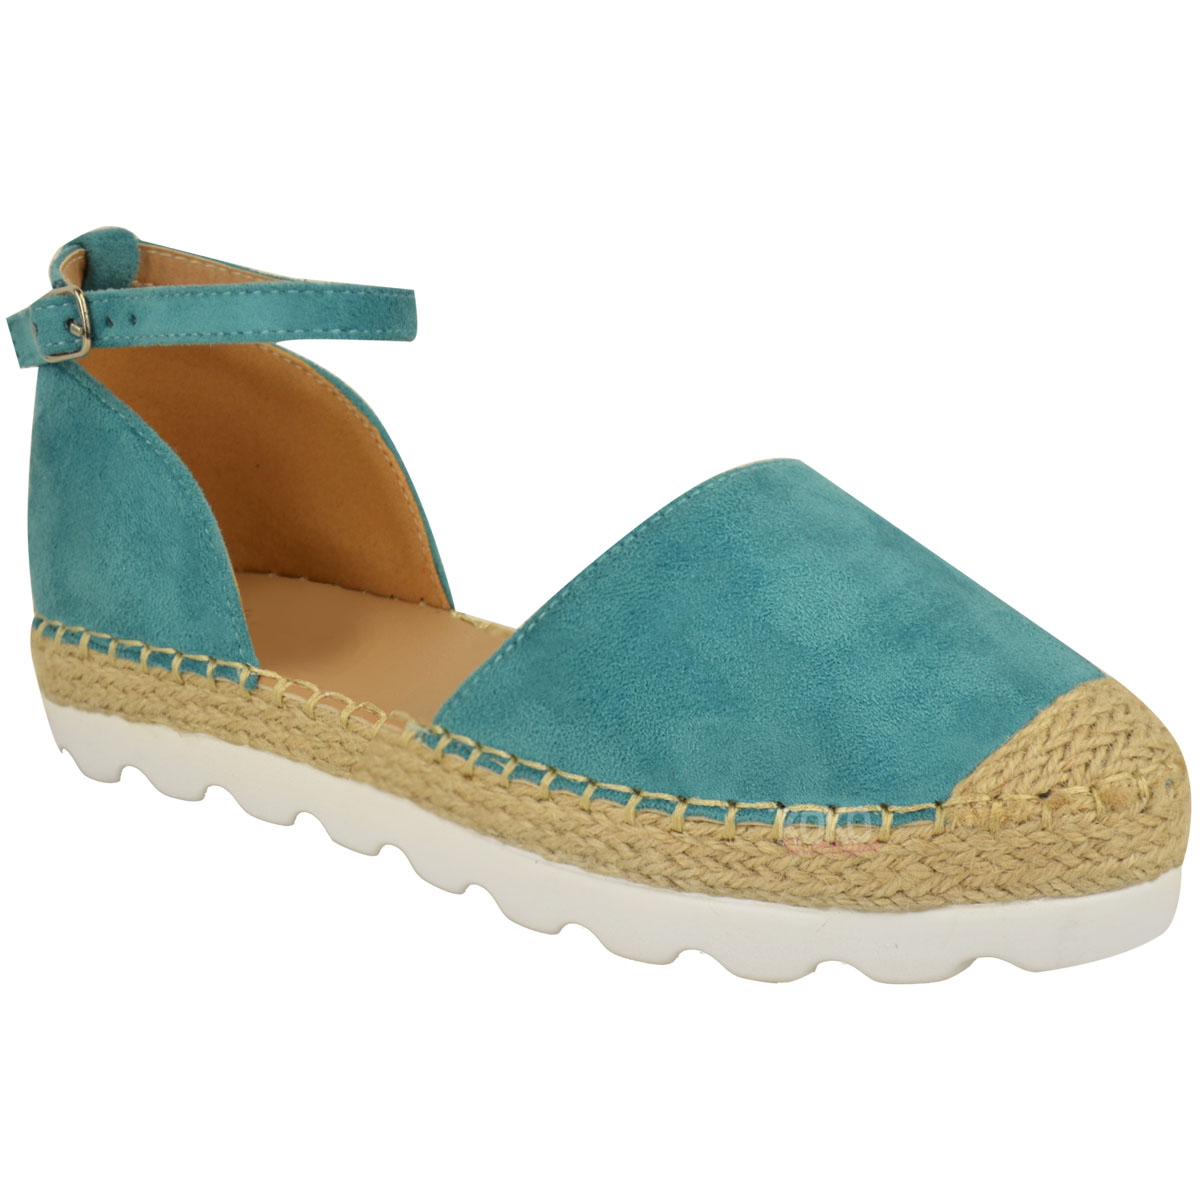 Flat Shoes With Ankle Strap For Sale